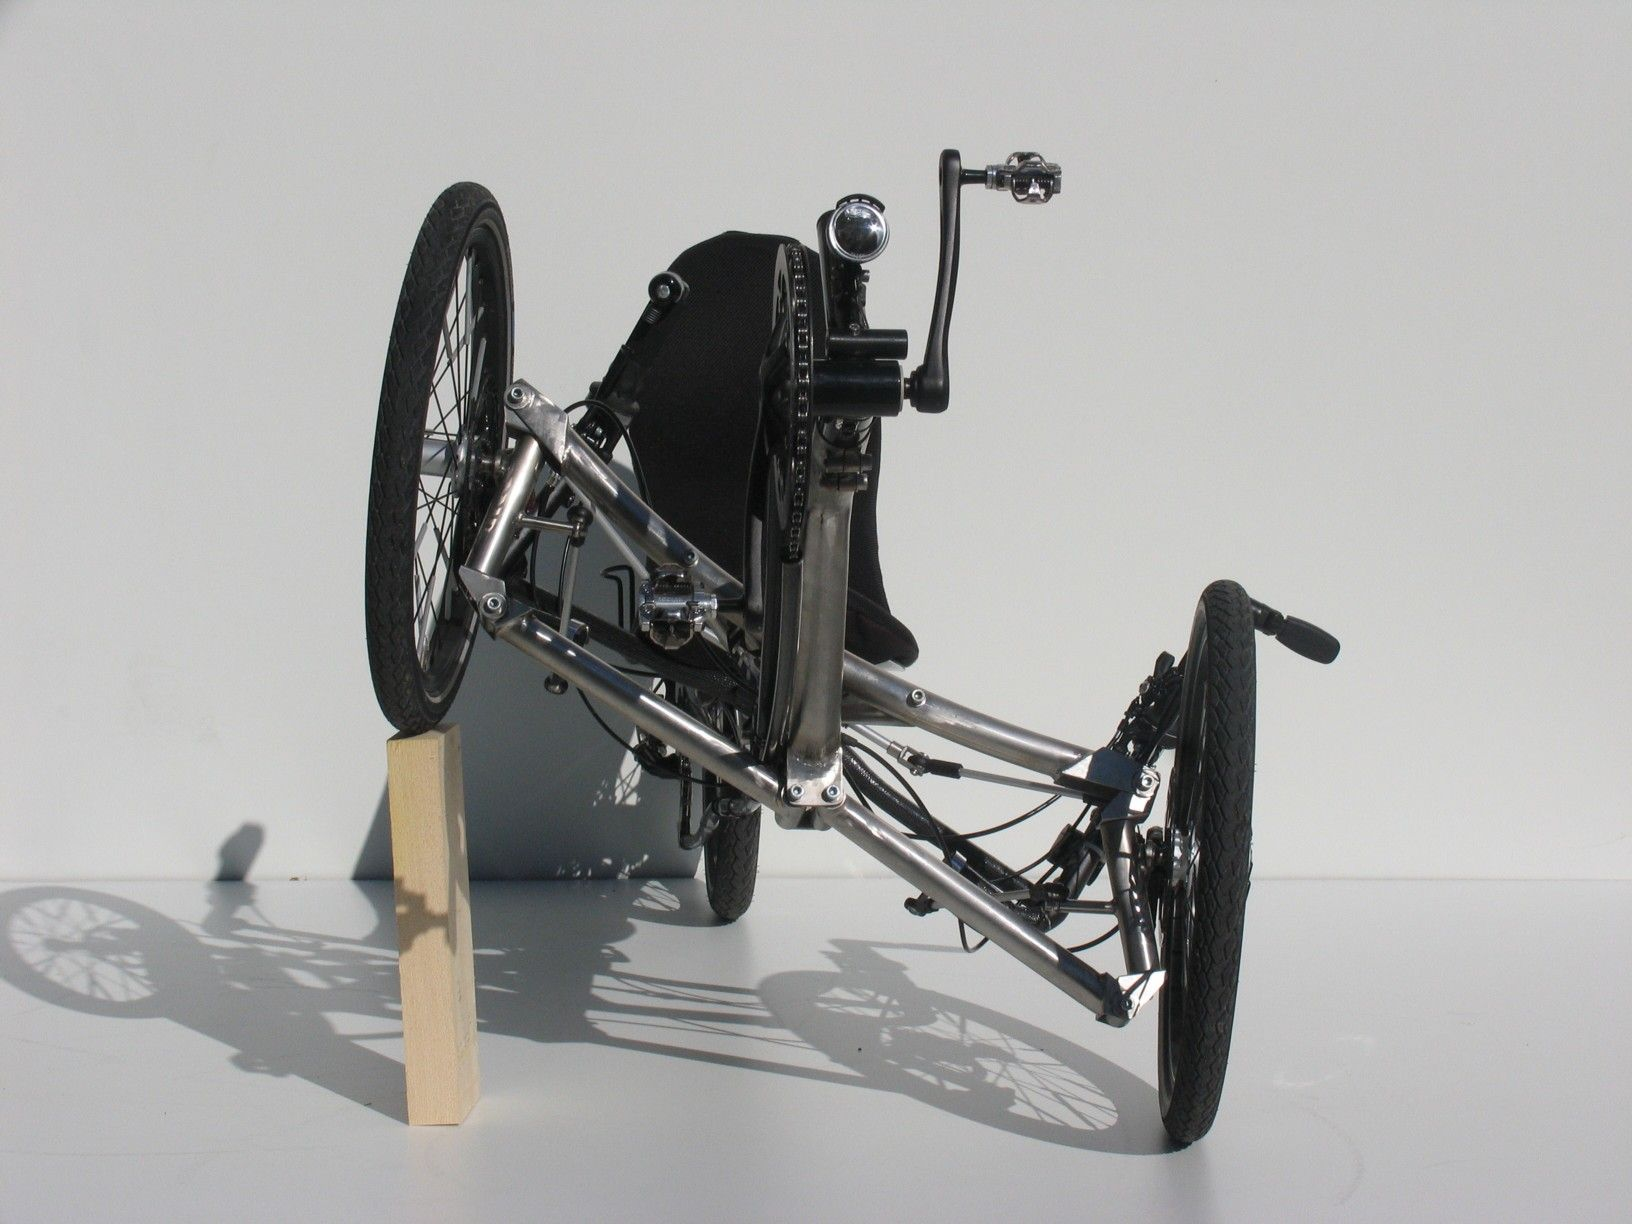 trike eigenbau mit neigetechnik recumbent trikes. Black Bedroom Furniture Sets. Home Design Ideas